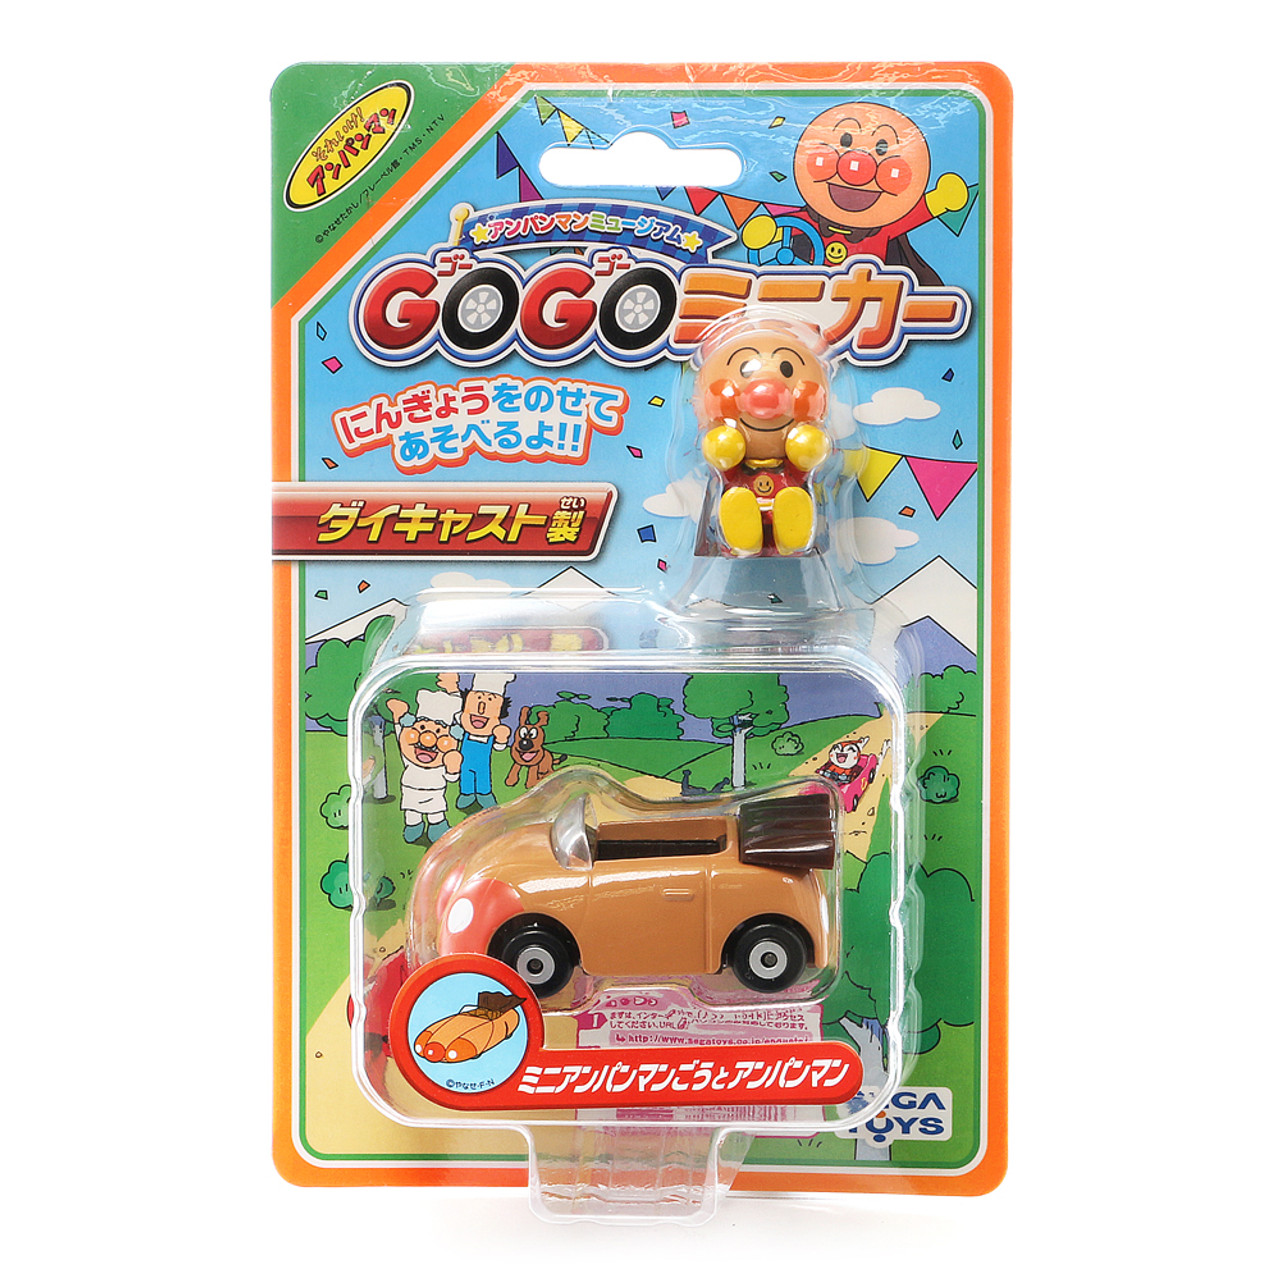 Sega Toys Anpanman Museum Go Go Mini Vehicle Carry Hero - Anpanman Roadster ( Complete Packing )